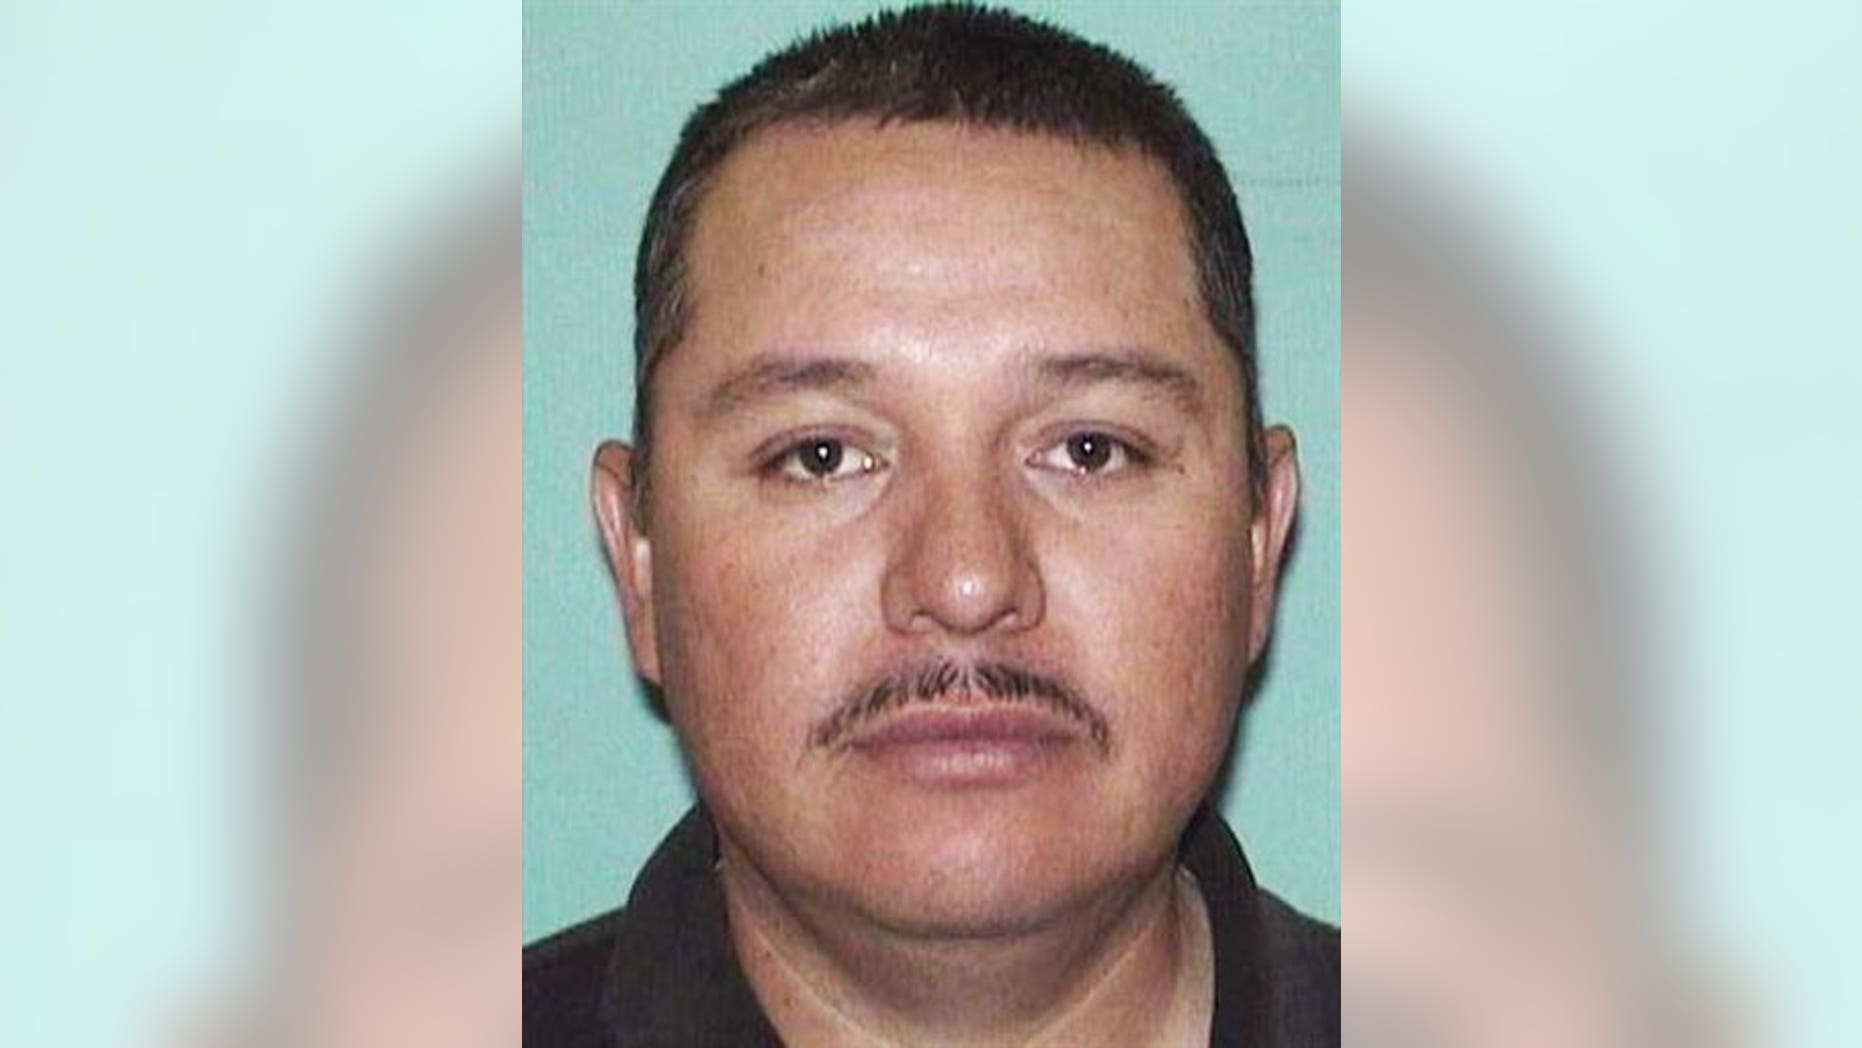 This photo provided by the Roswell Police Department shows Juan David Villegas-Hernandez.